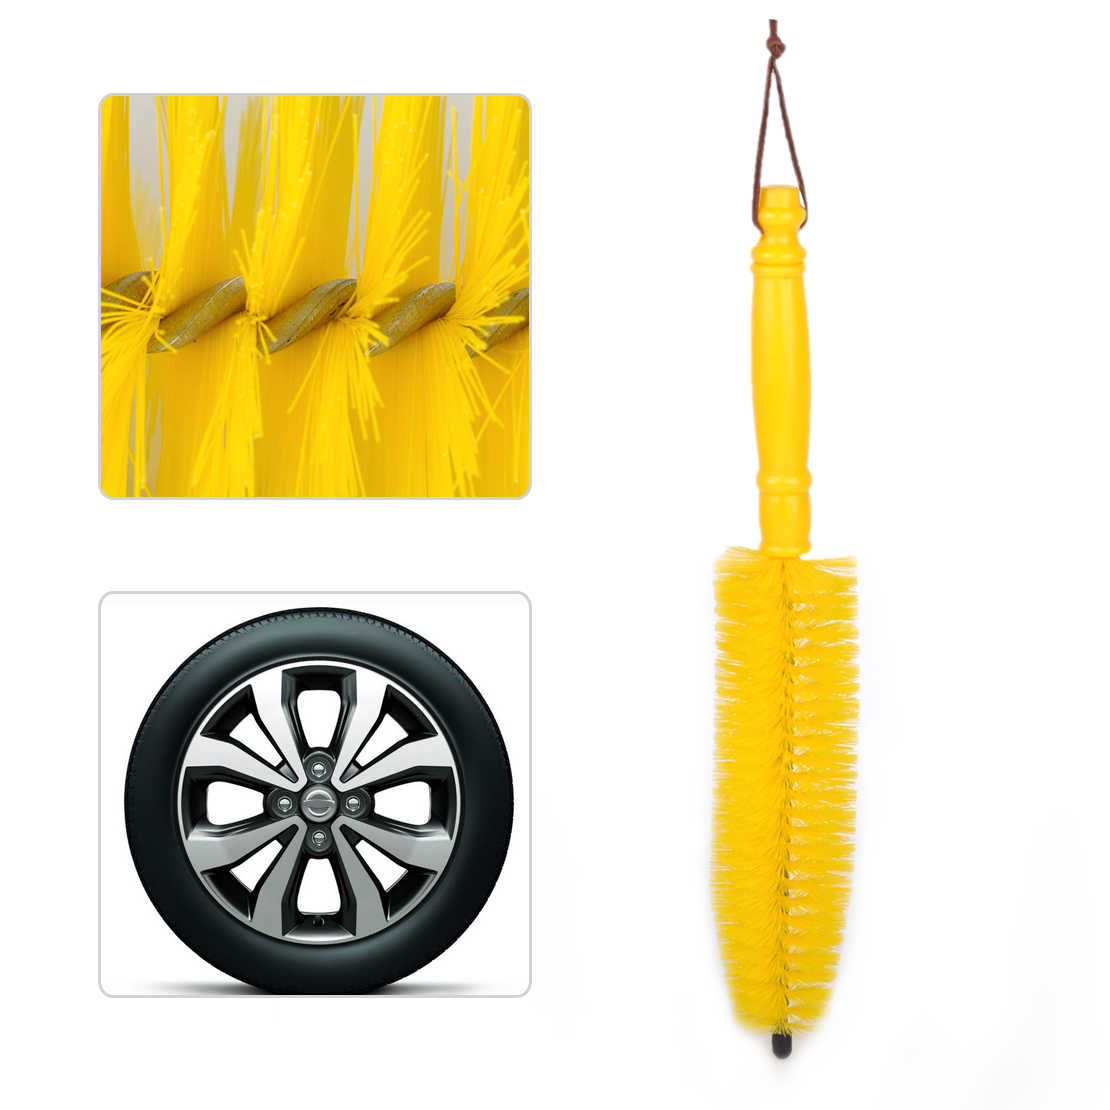 beler New 1Pc Yellow Wheel Tyre Tire Rim Hub Long Brush Scrub Handle Cleaner Washing Tool For Car Auto Vehicle Motorcycle